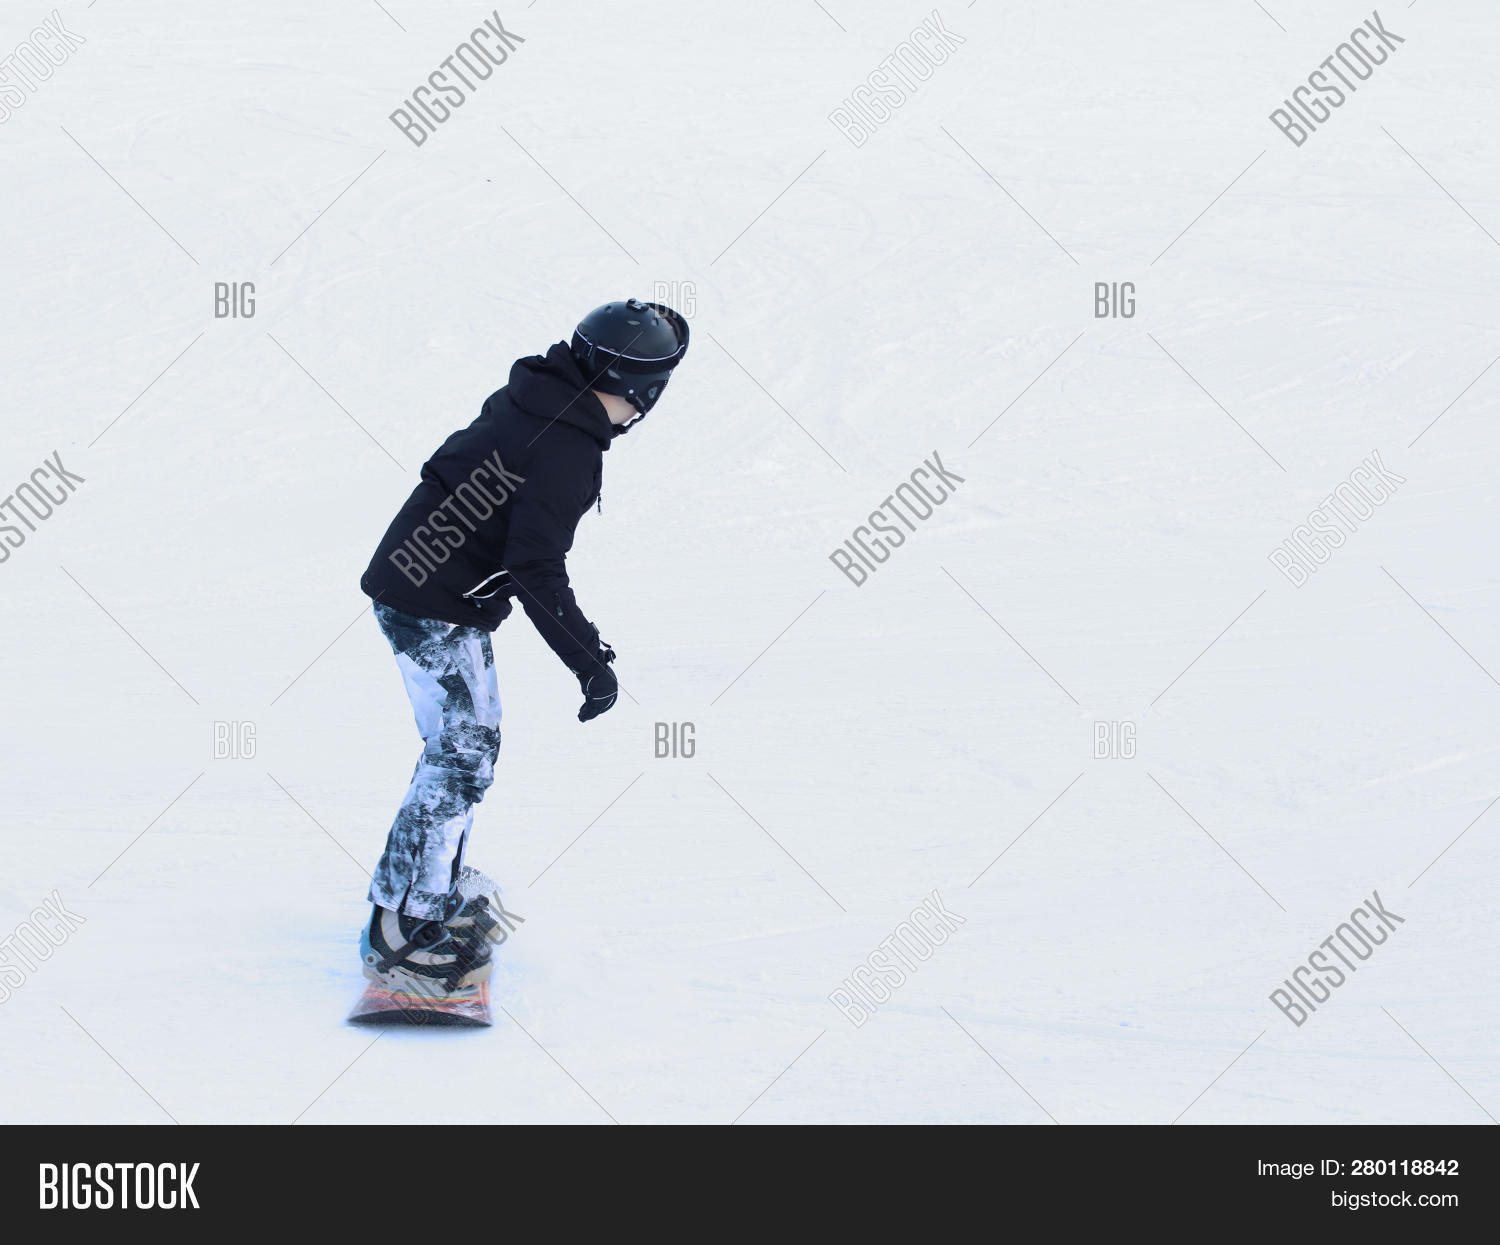 Snowboarder Riding On Image Photo Free Trial Bigstock